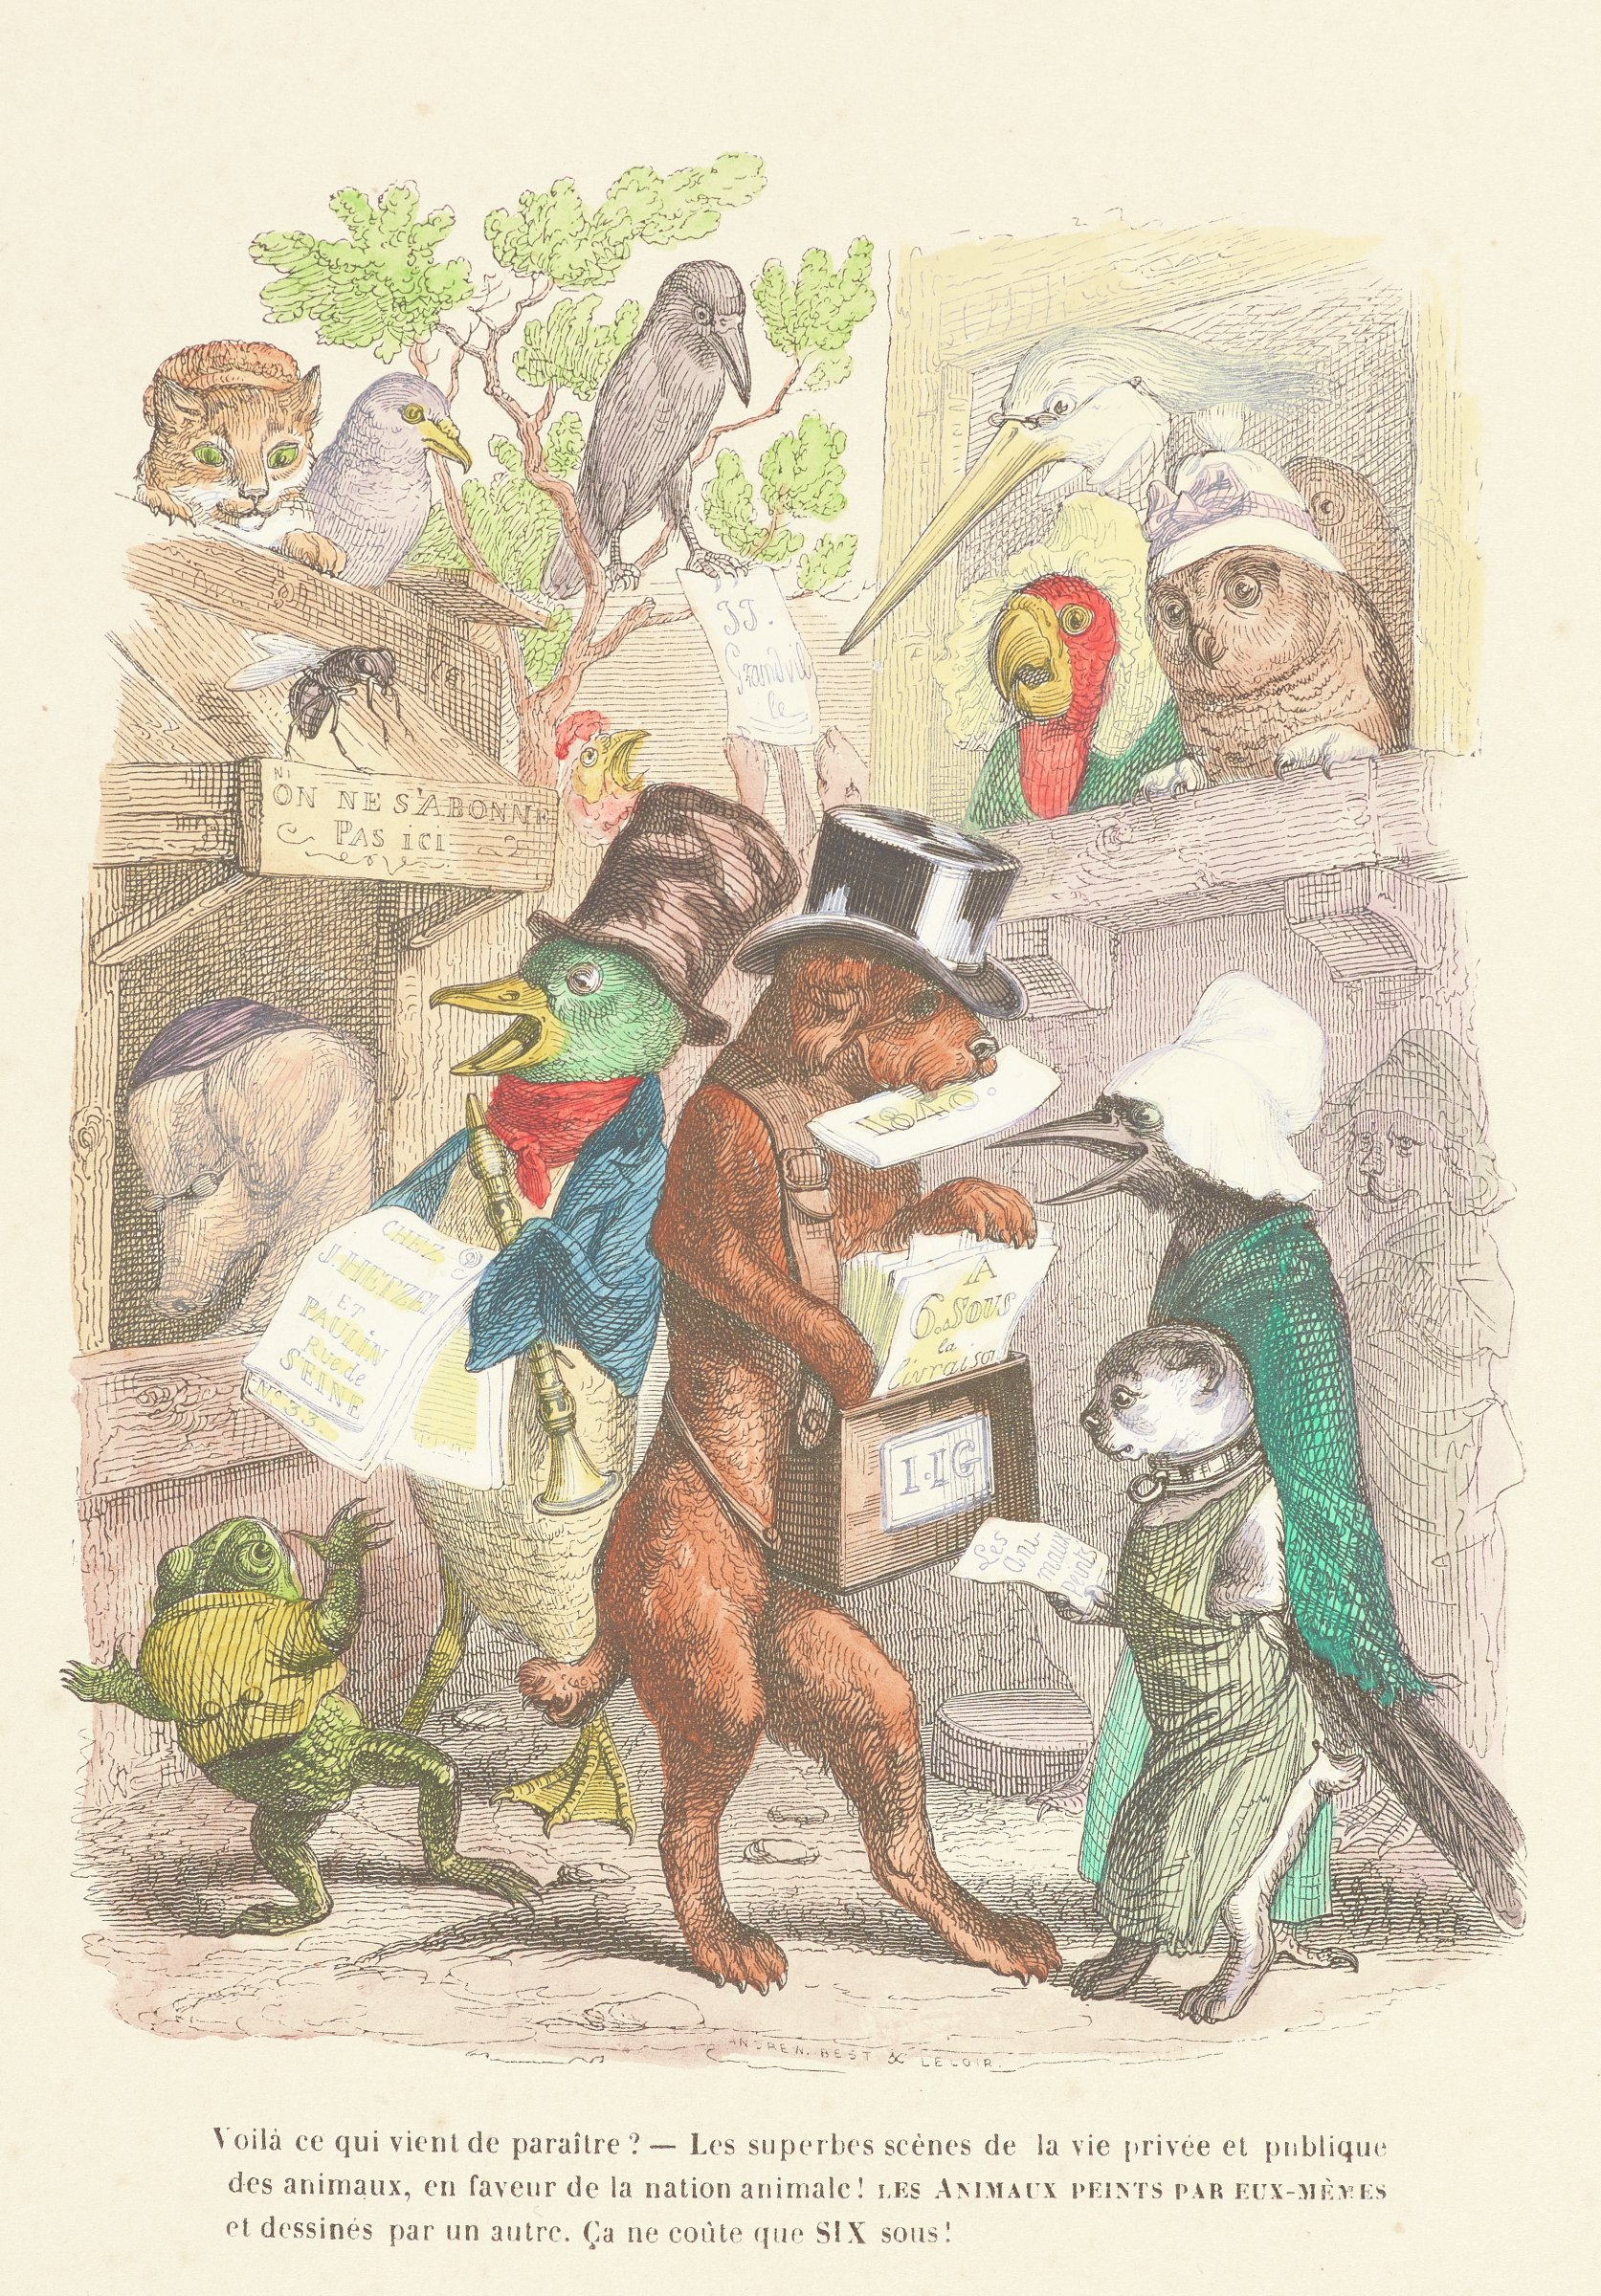 Various types of birds, dogs, and other animals are personified. A dog in a top hat distributes newspapers in the center.